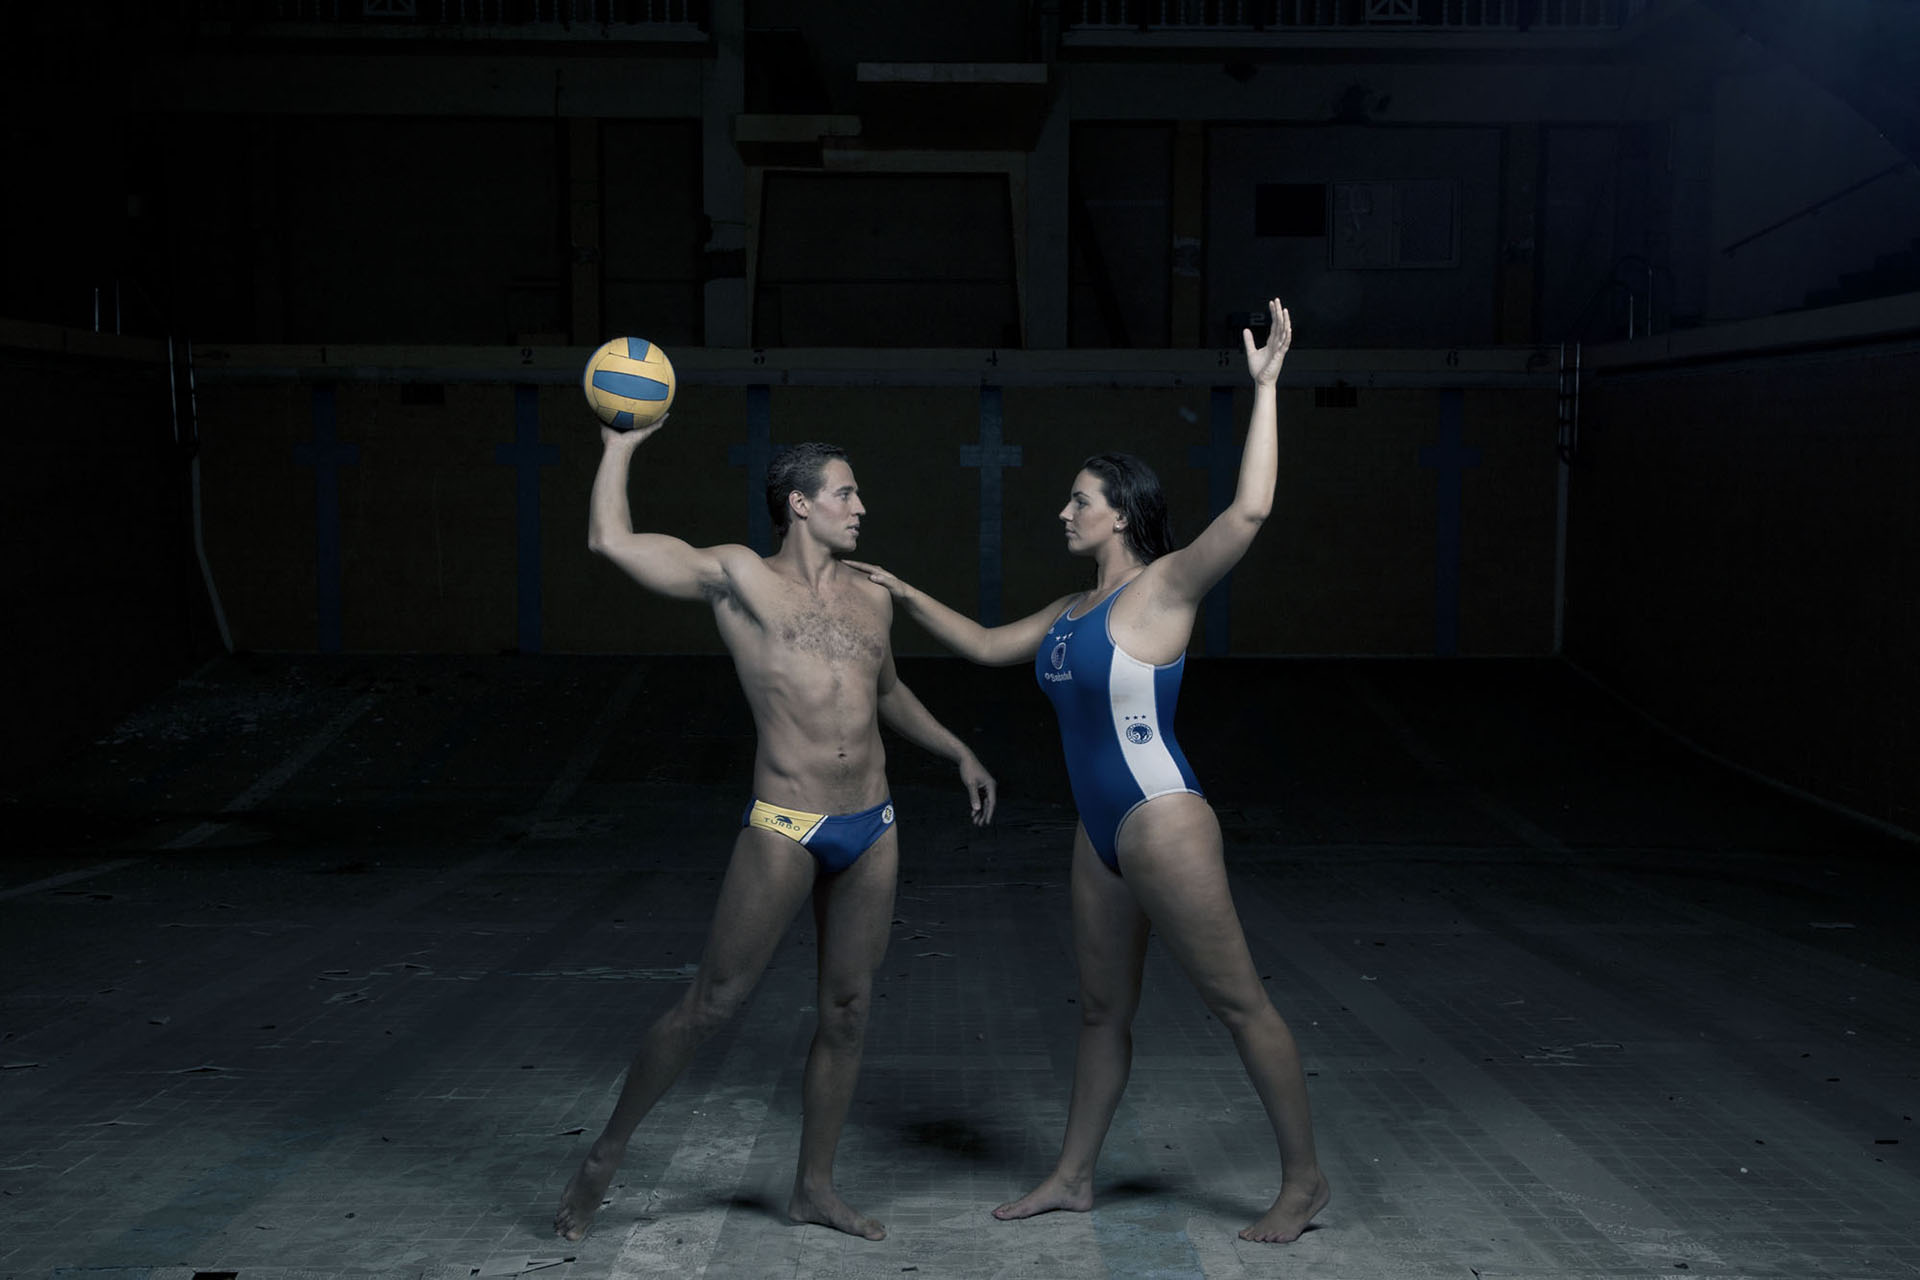 Joan Sèculi Photography - Anuari Waterpolo